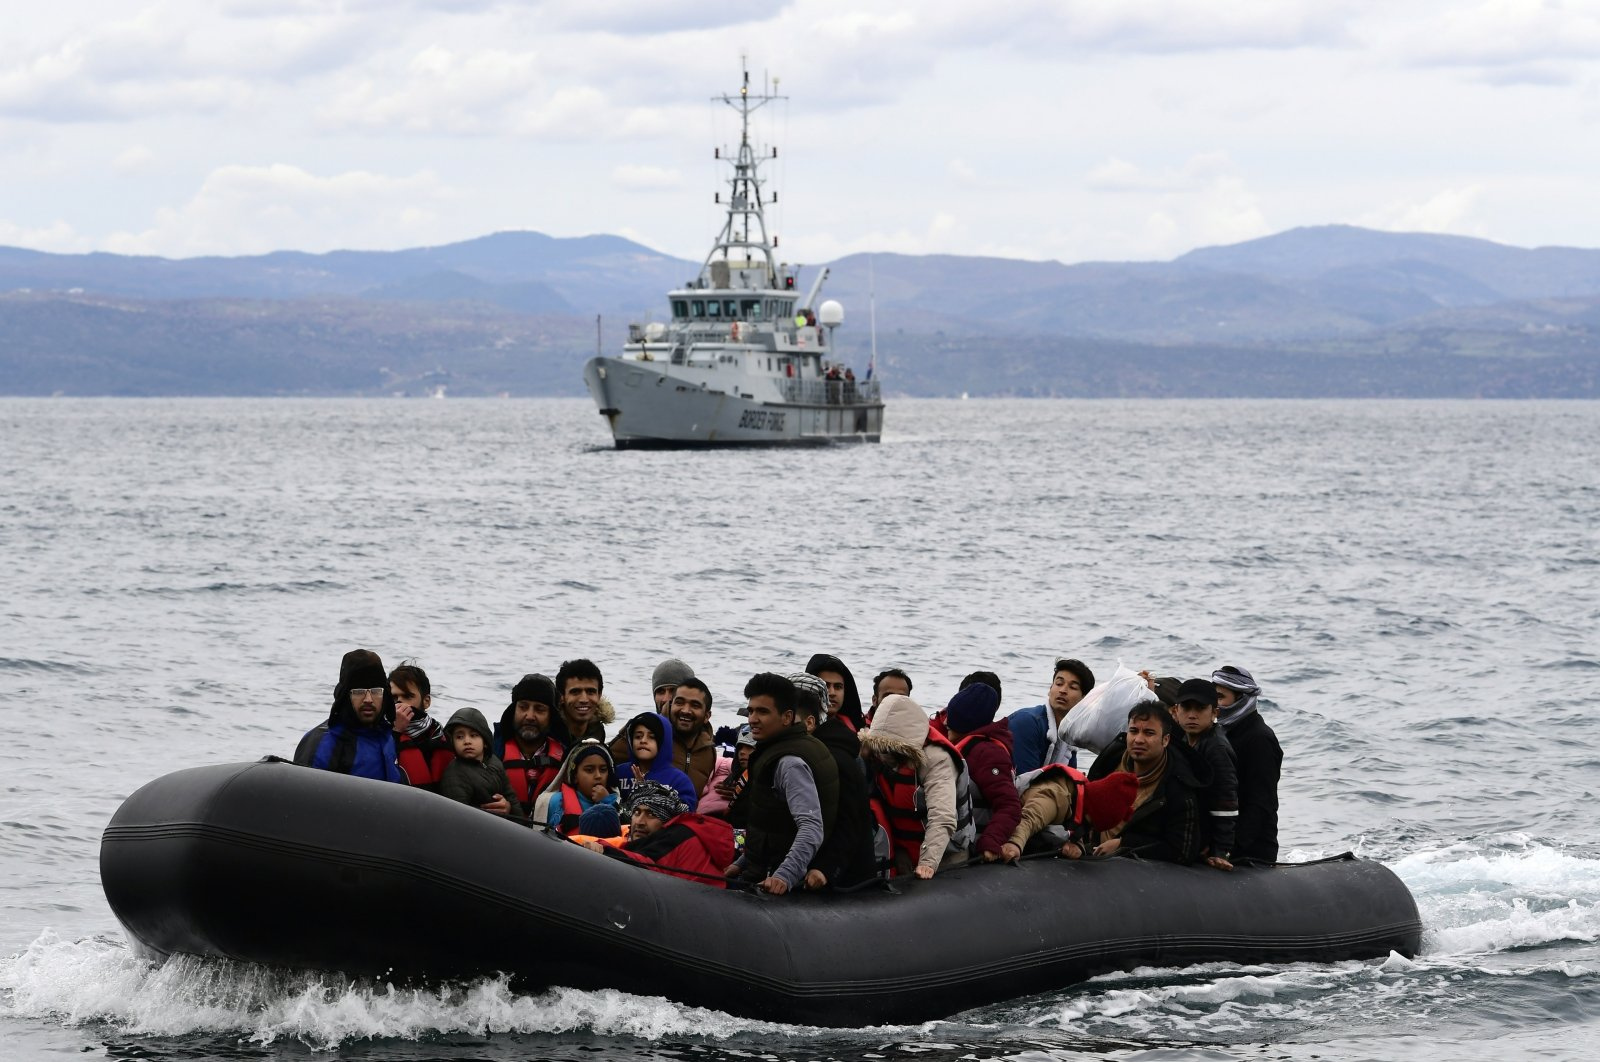 Migrants arrive with a dinghy accompanied by a Frontex vessel off the Greek island of Lesbos, Feb. 28, 2020. (AP Photo)